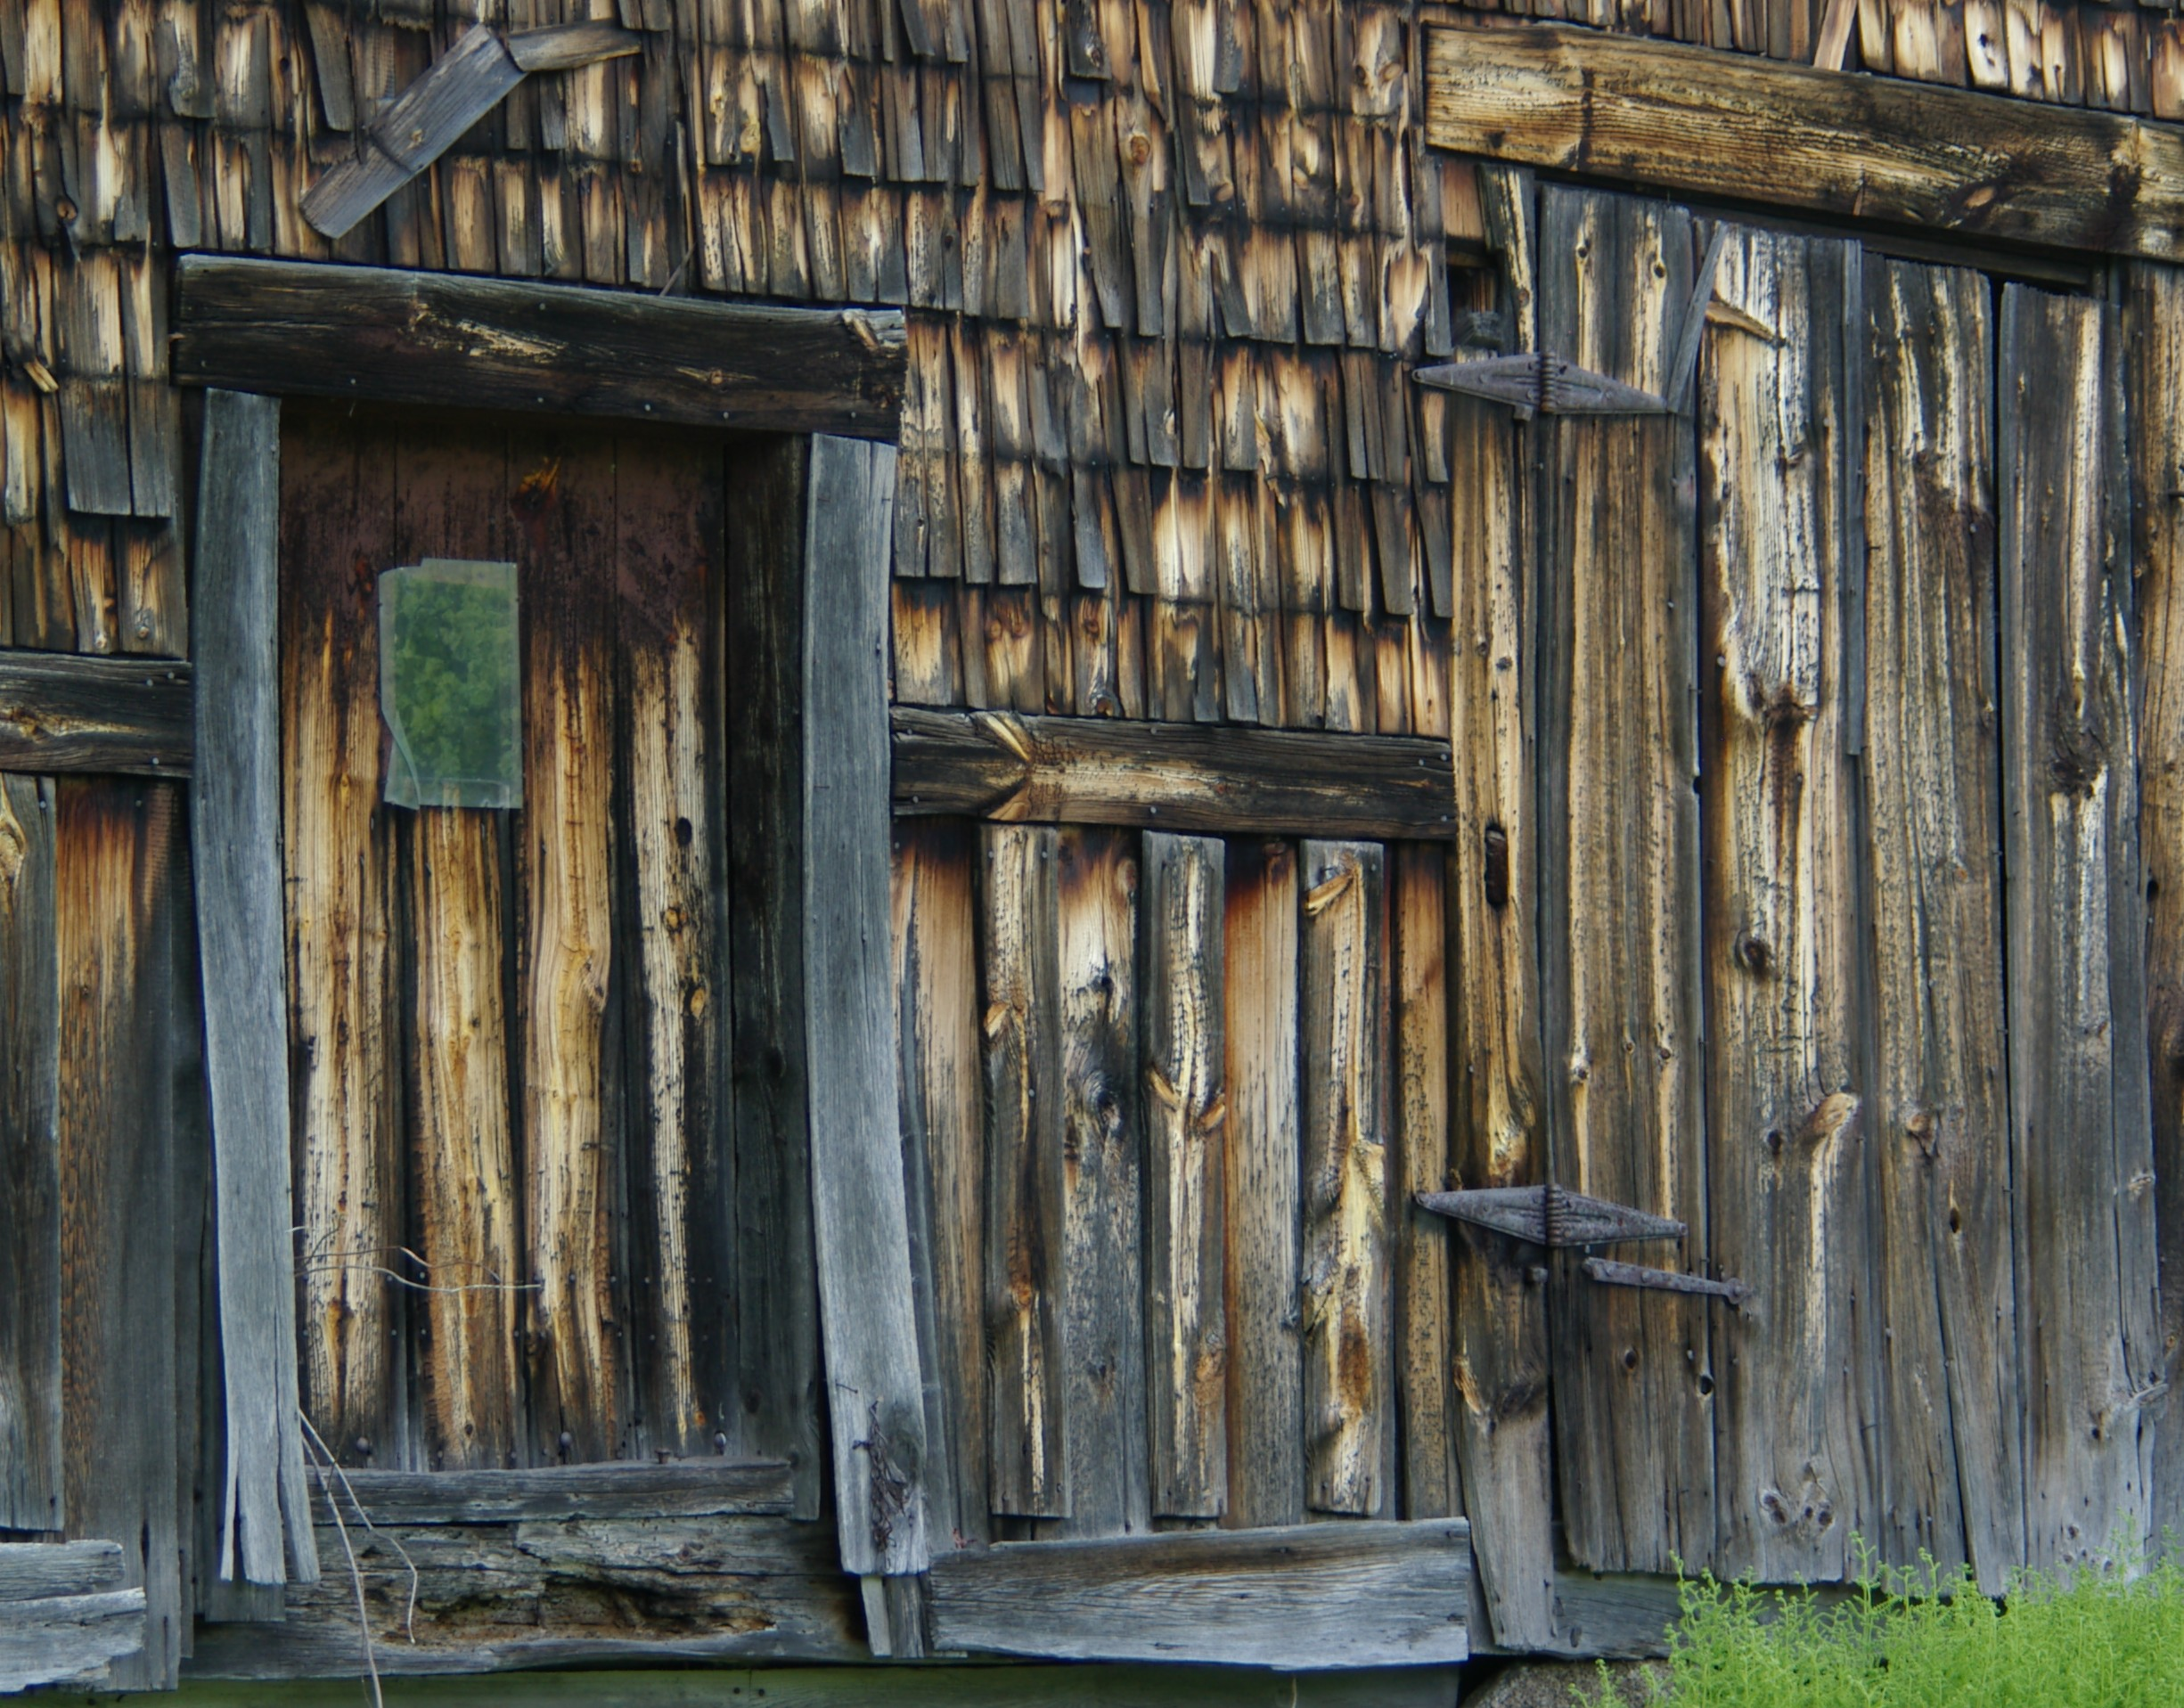 Hinged barn doors -  Prior To The 1850s Most Barns Had A Least One Pair Of Large Hinged Doors That Opened Onto The Main Drive Floor Each Door Measured About Four Or Five Feet